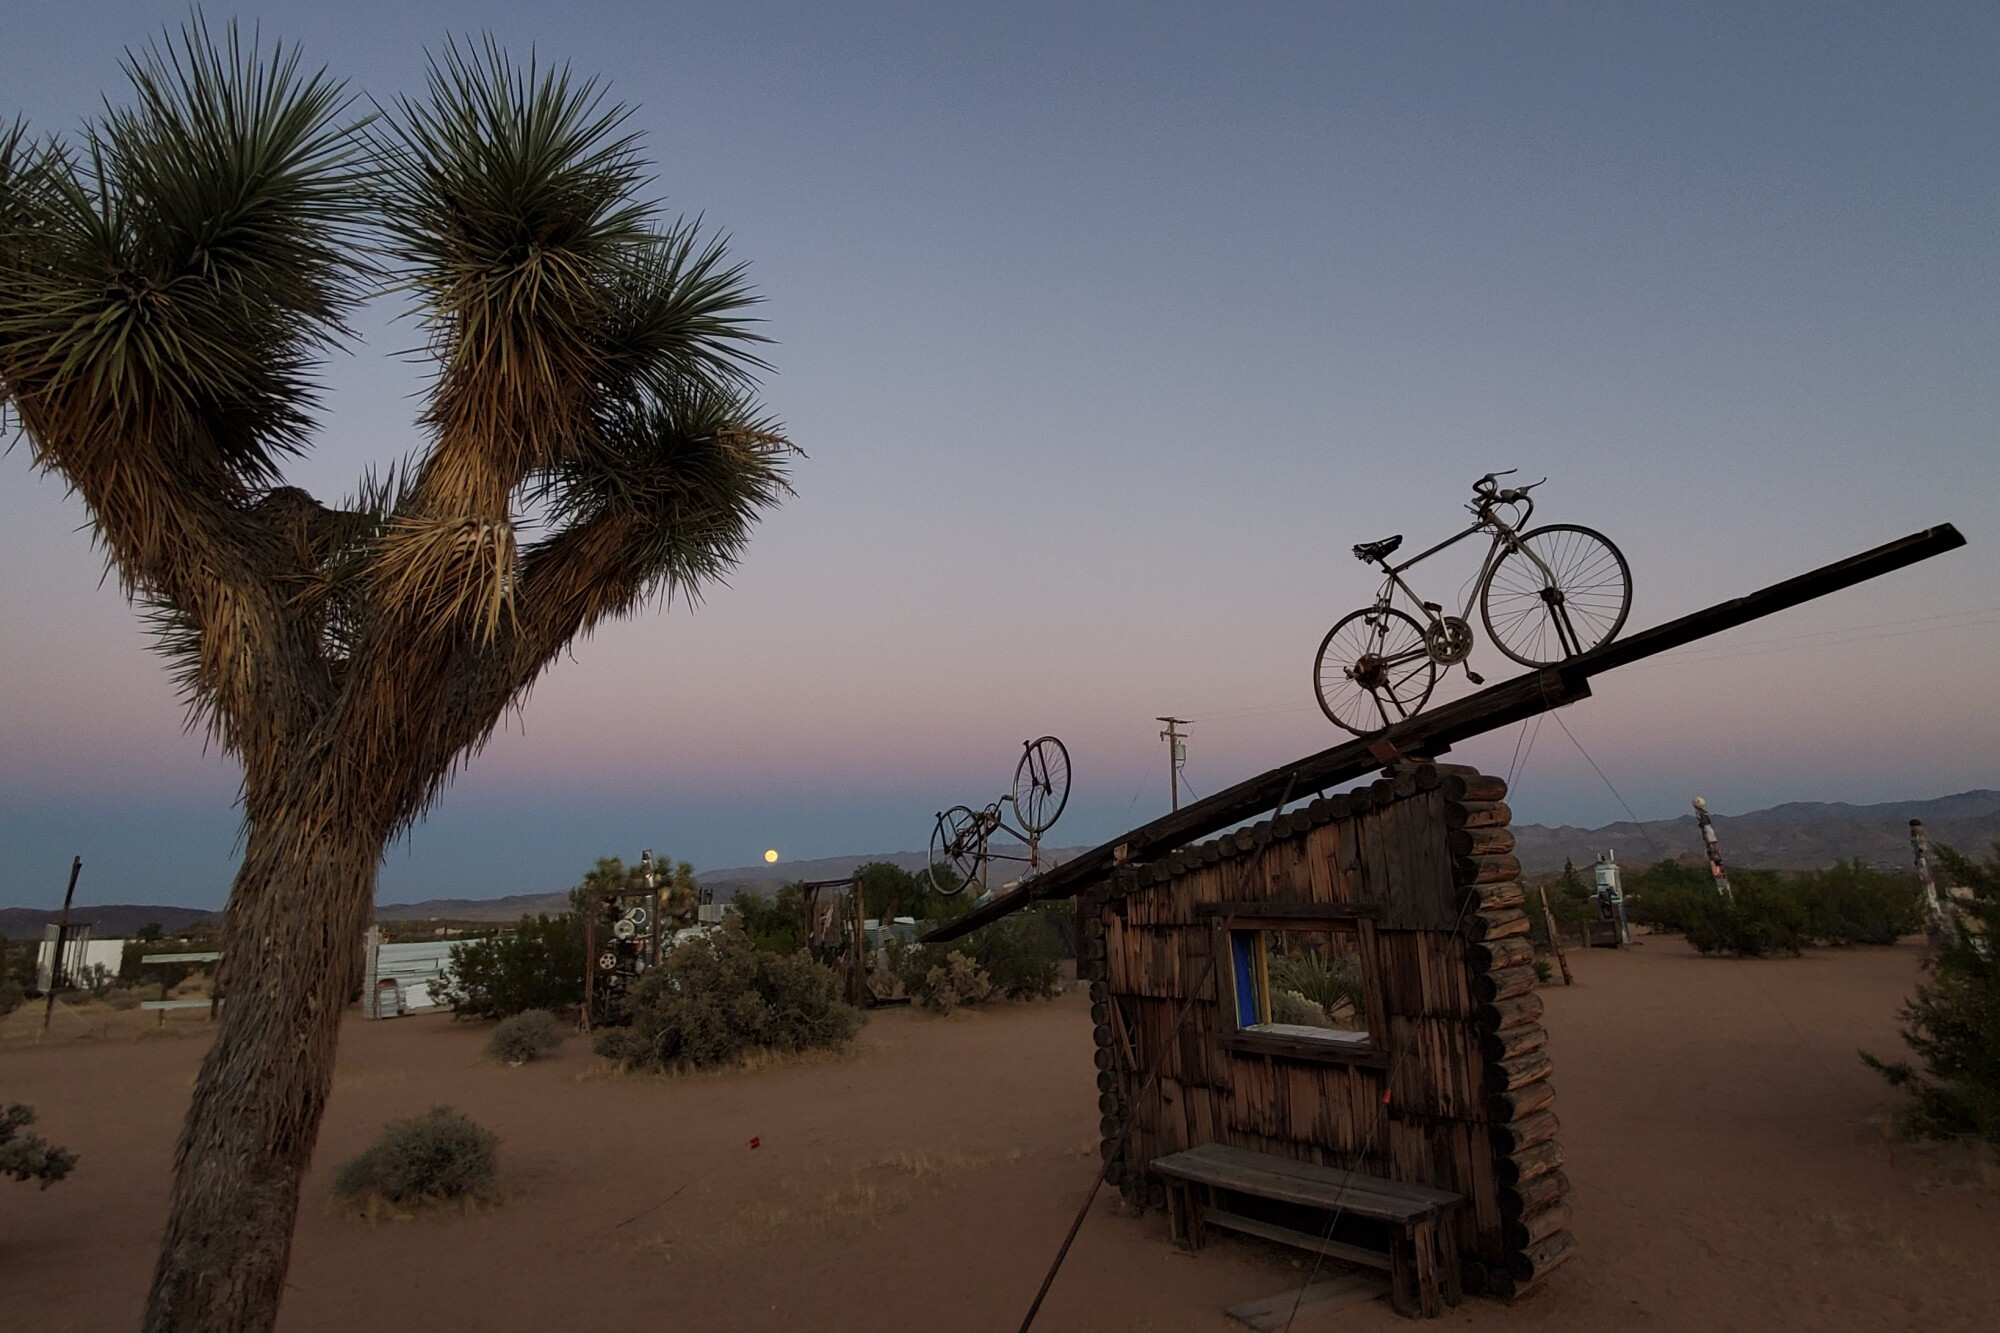 An outdoor sculpture made of two bicycles atop a wood structure, seen at sunset amid desert plants including a Joshua tree.